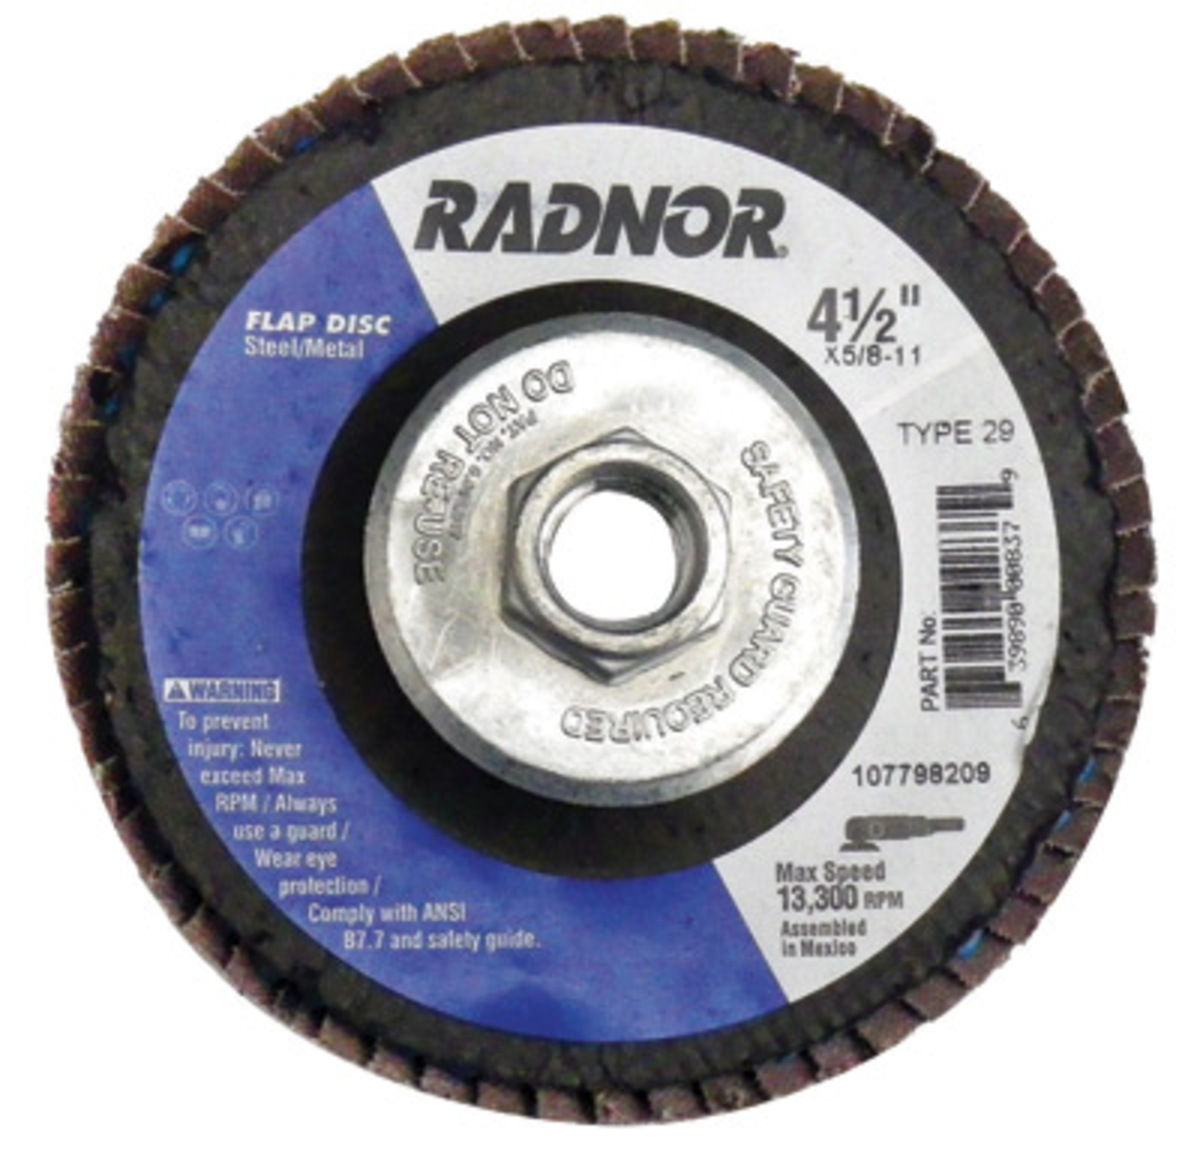 25 EA Radnor 4 1//2 X .0400 X 7//8 A60T Aluminum Oxide Reinforced Type 1 Cut Off Wheel For Use With Right Angle Grinder On Metal